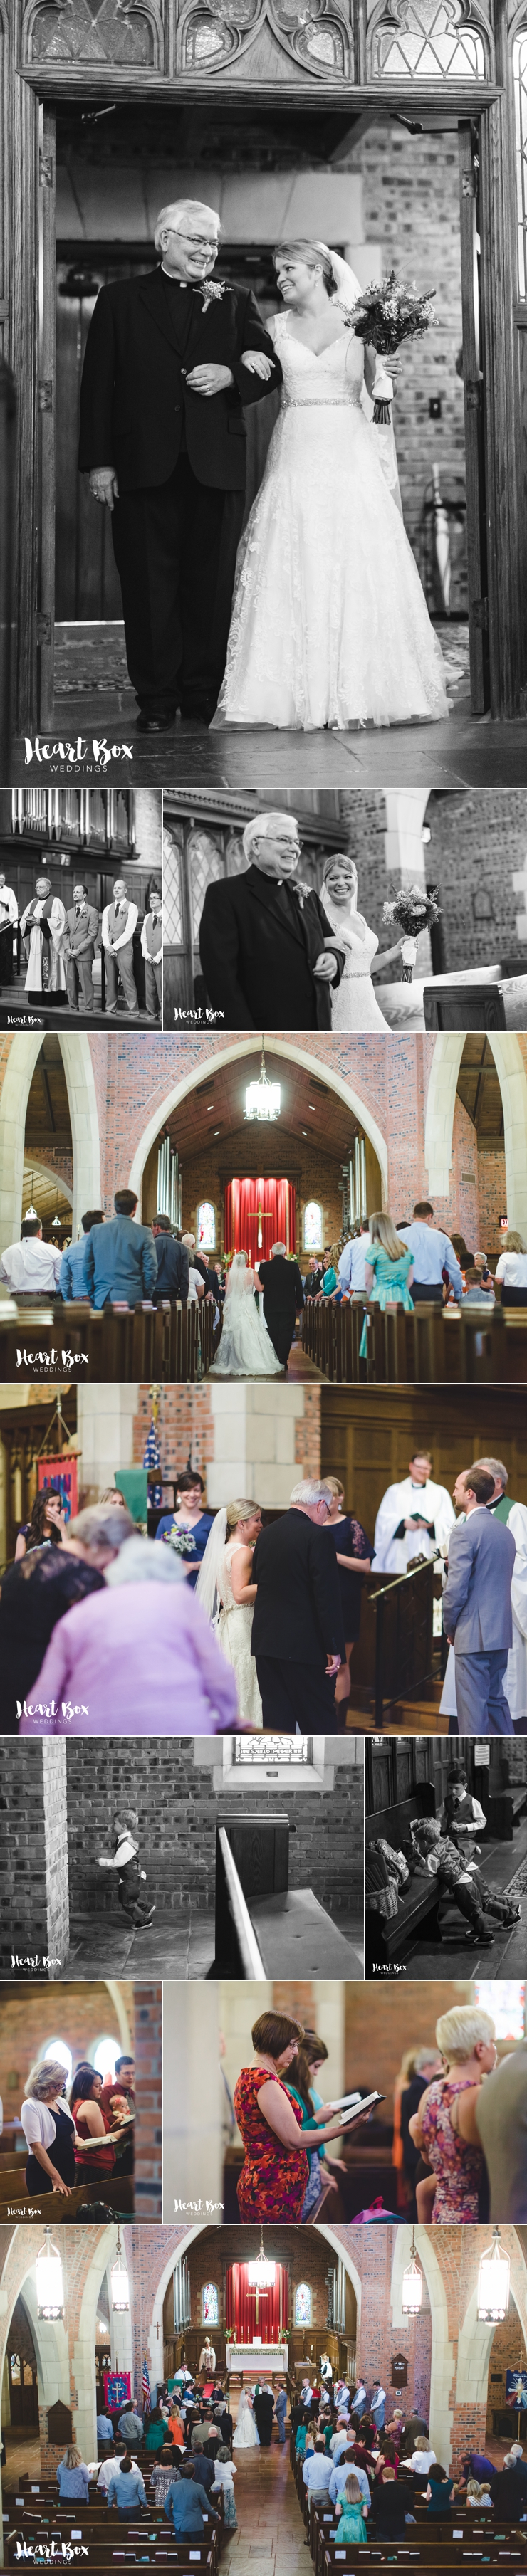 Louisa + Jon Wedding Blog Collages 4.jpg